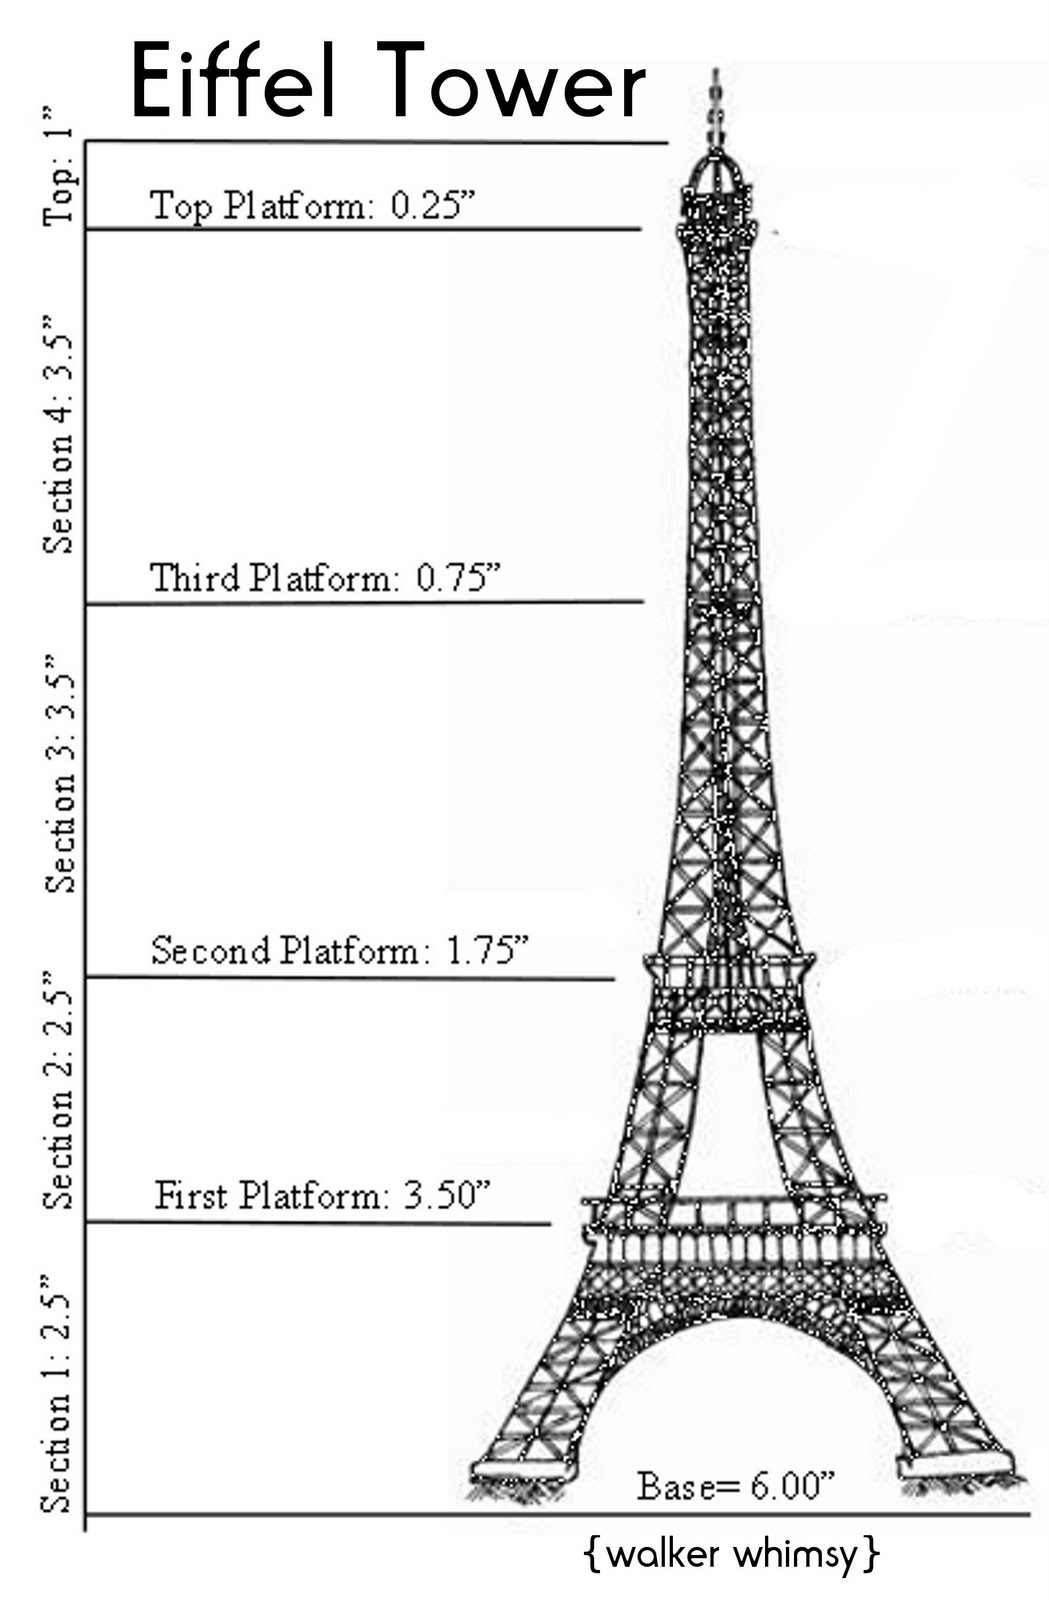 Eiffel tower dimensions images - Tour eiffel dimension ...